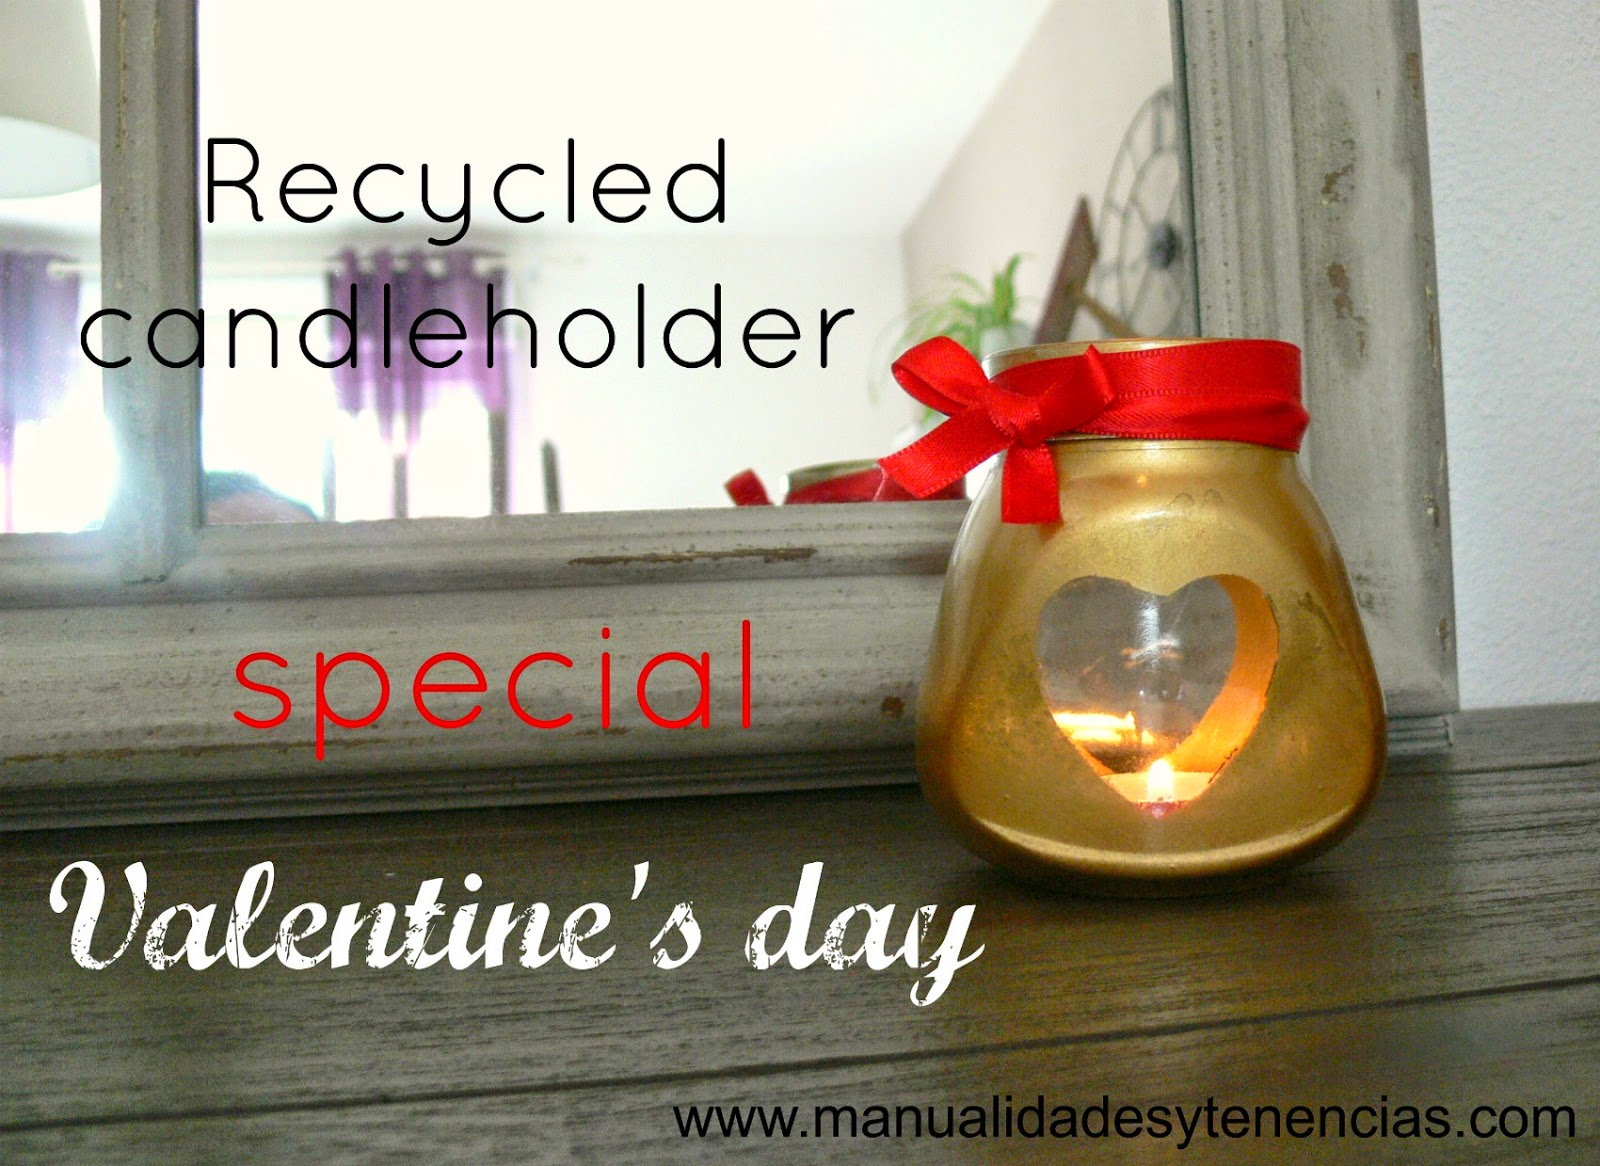 Recycled candle holder for Valentine's day